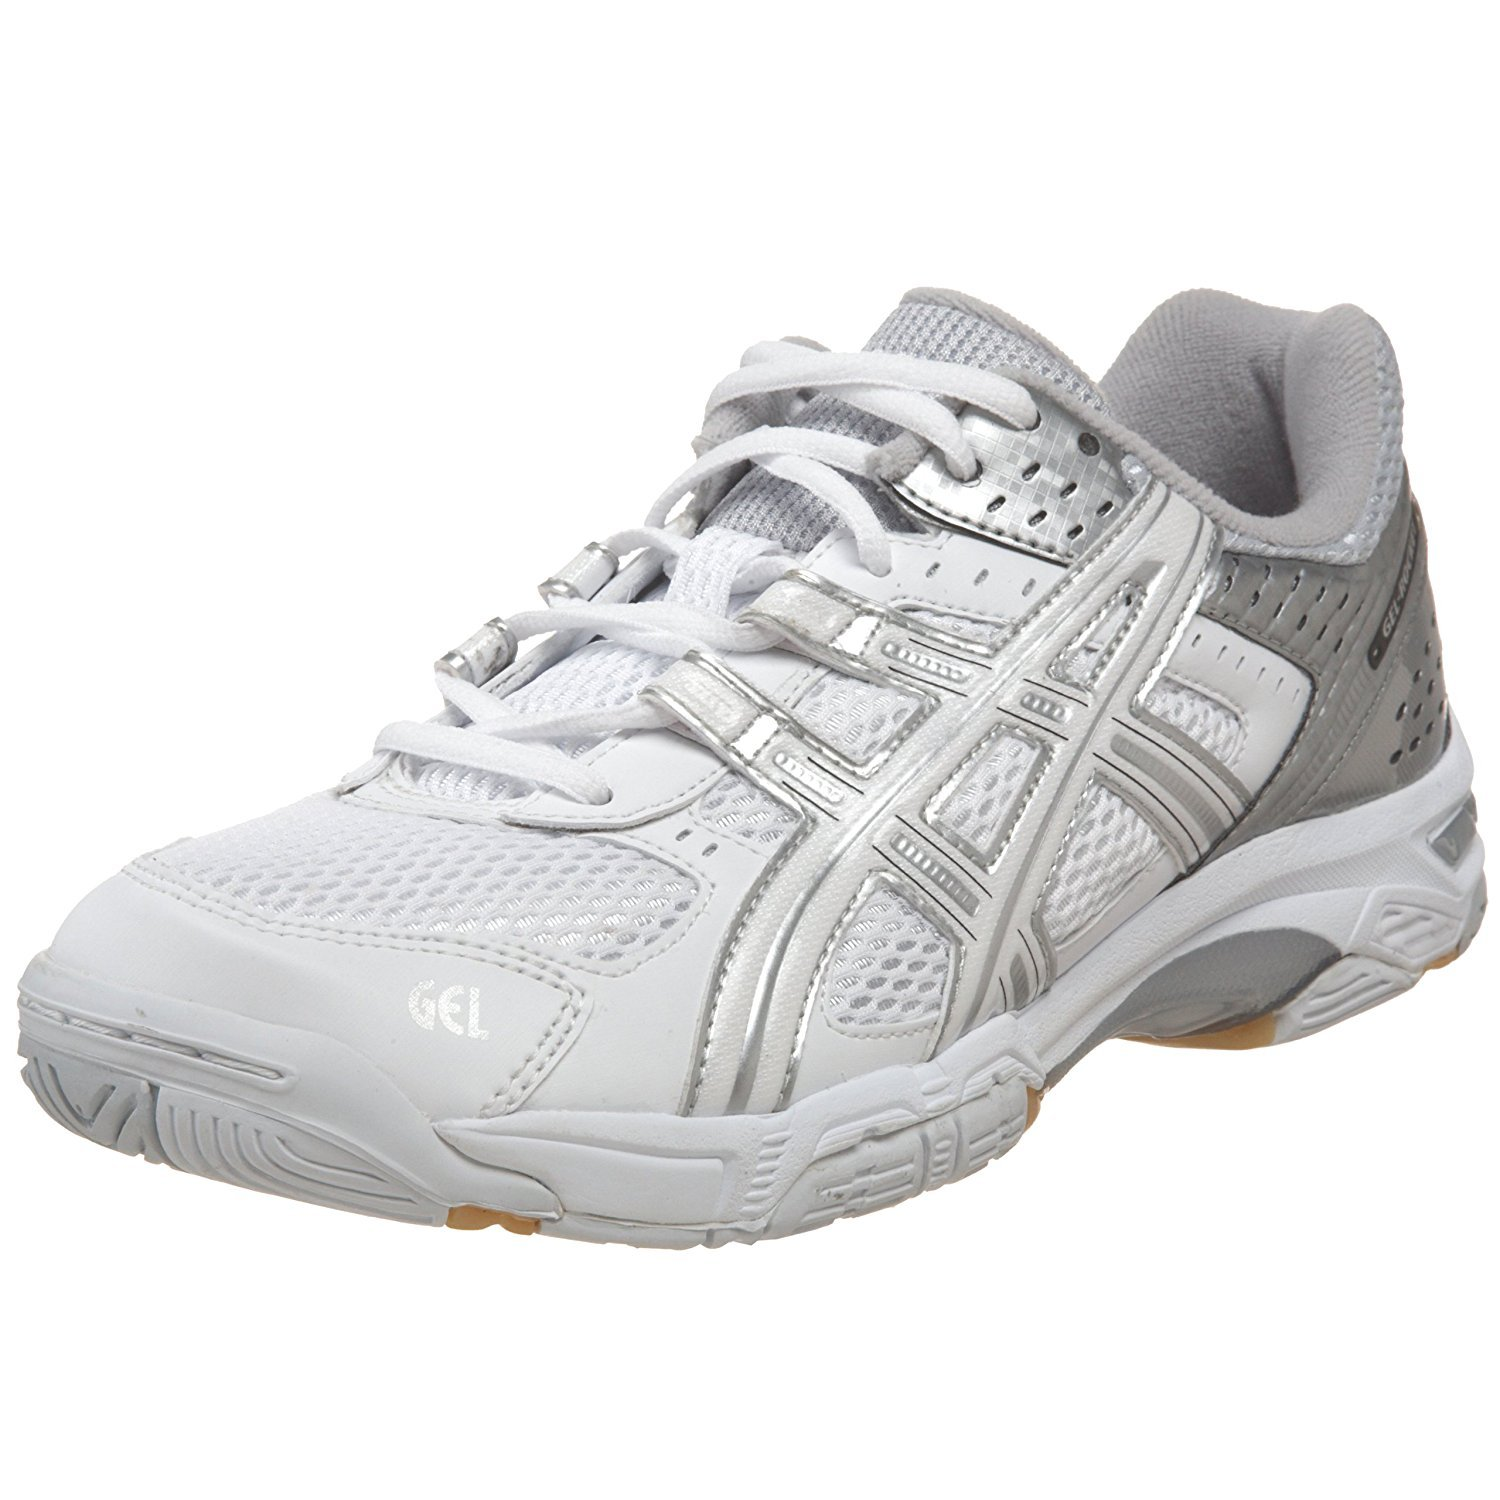 Buy ASICS Women s Gel Rocket 5 Volleyball Online at Low Prices in India -  Amazon.in e6d8e34a0